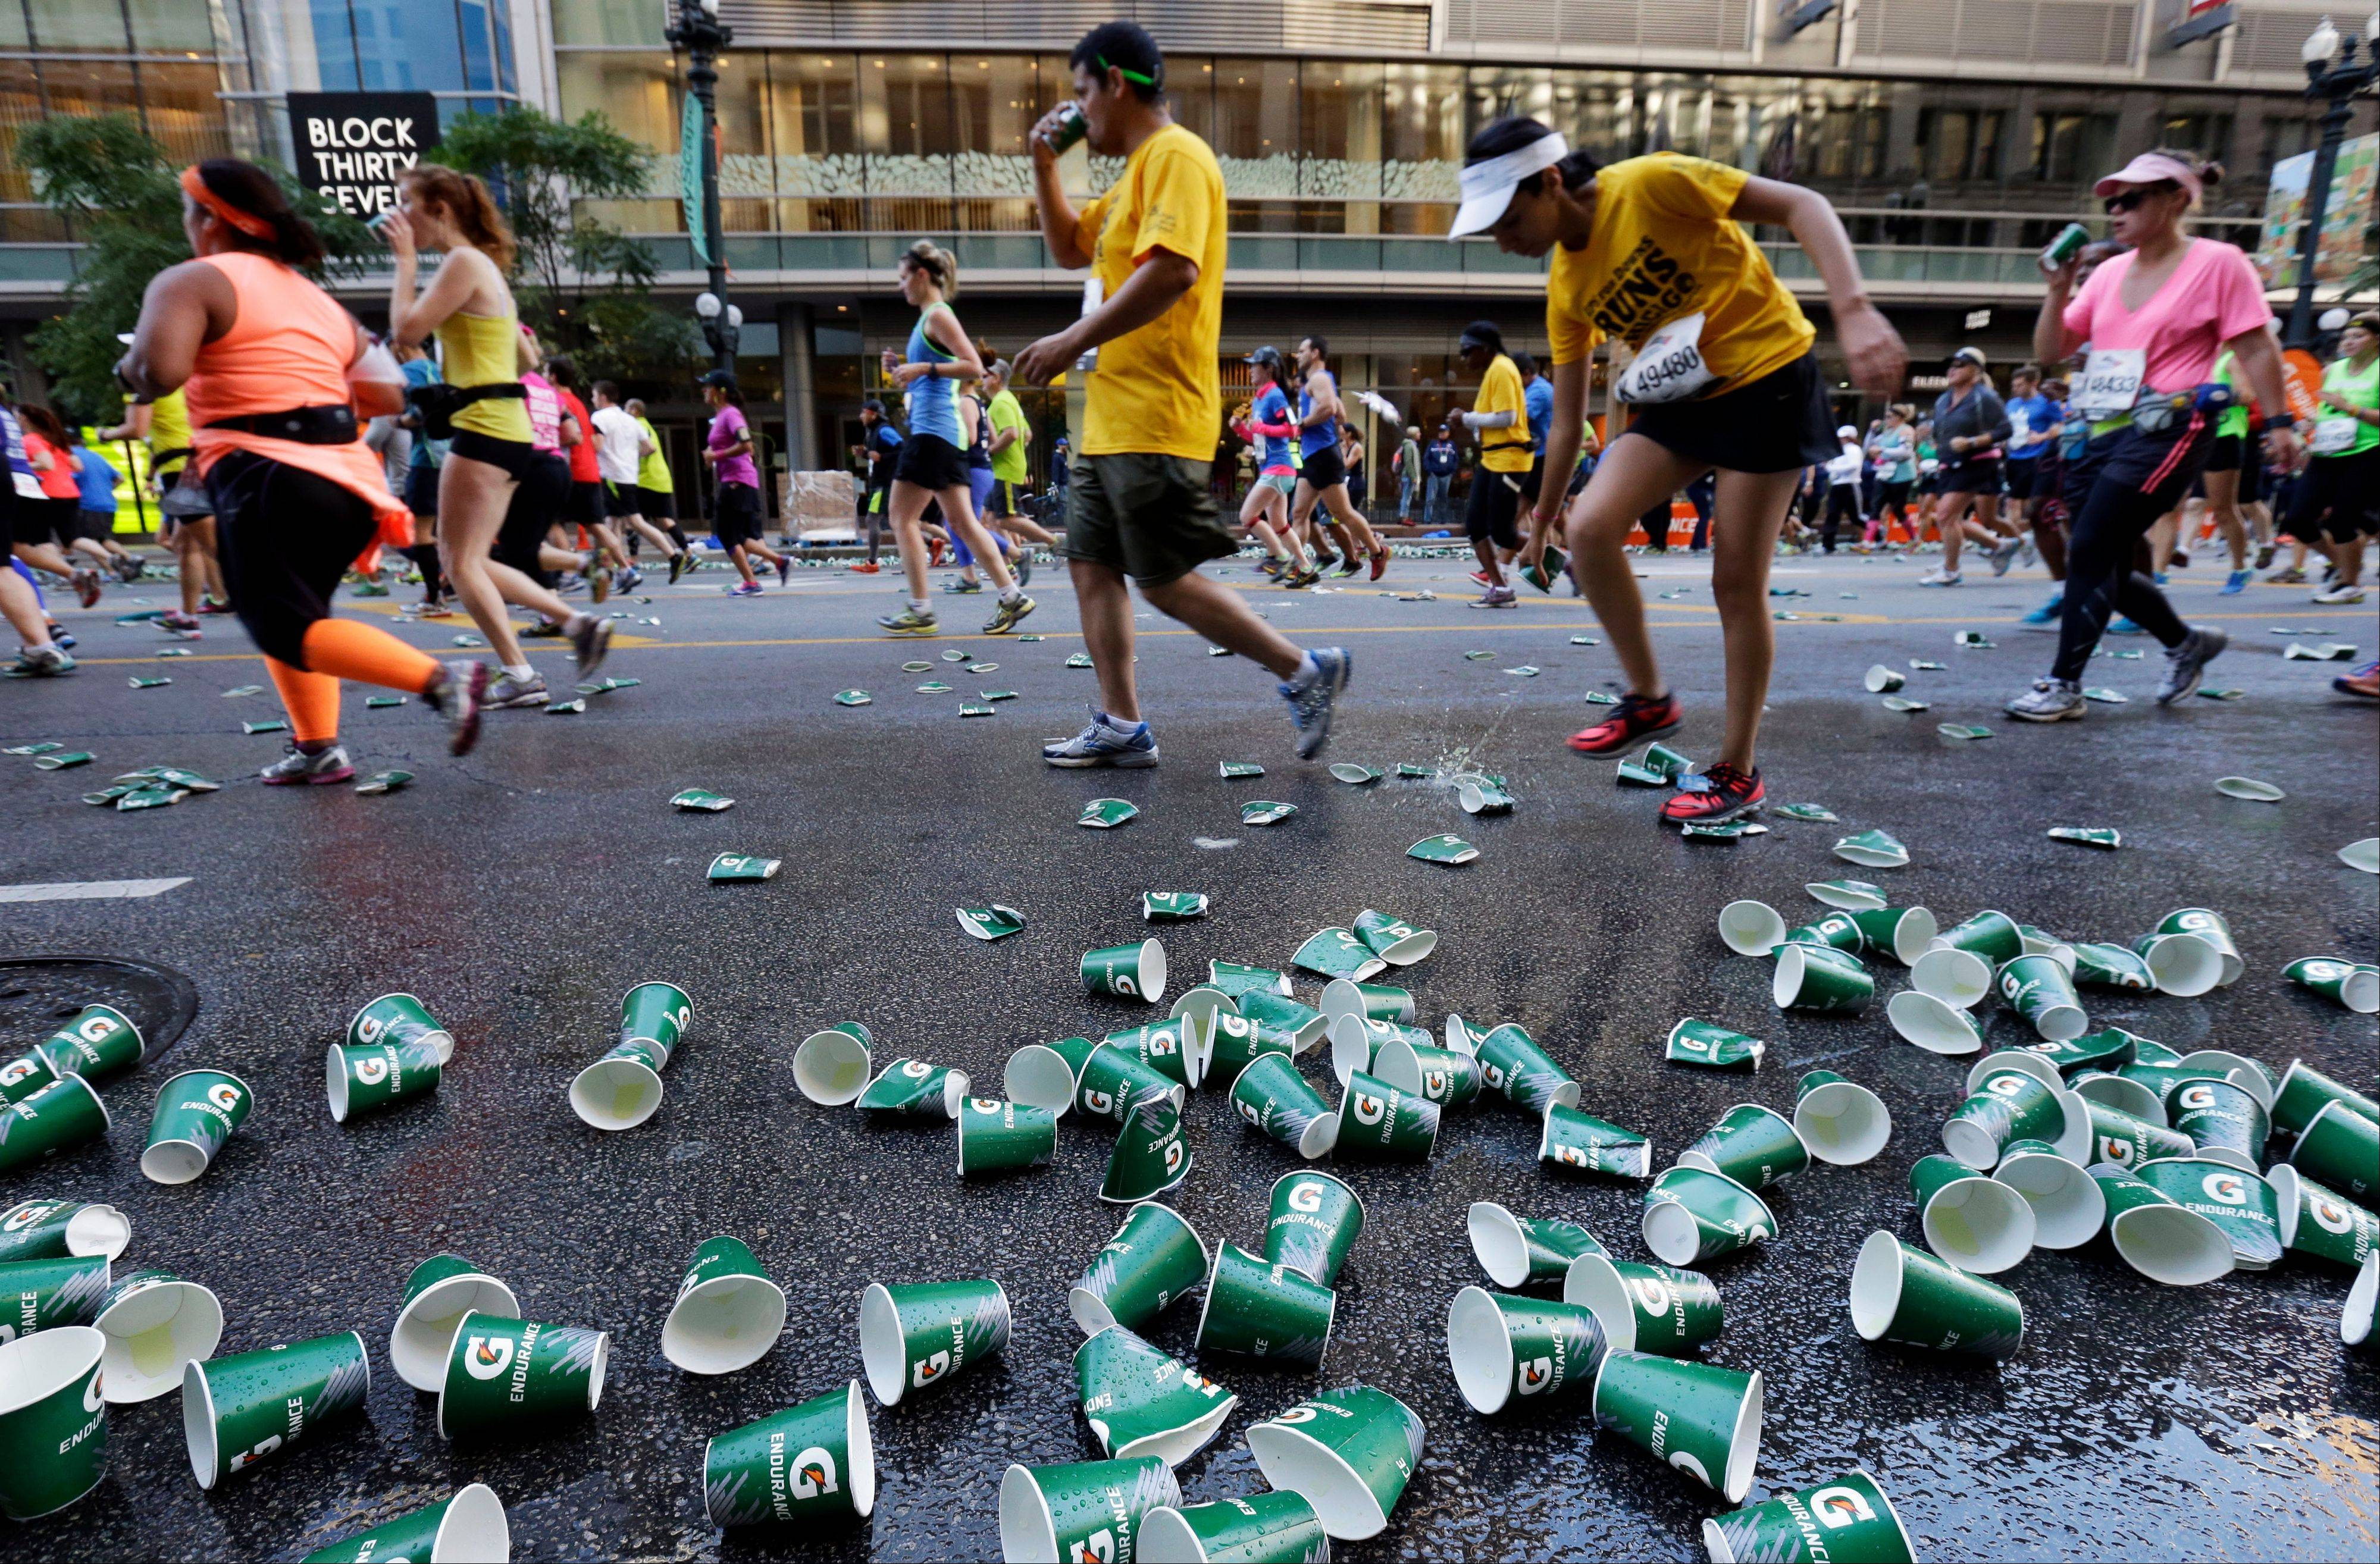 Runners participate in the Chicago Marathon in Chicago, Sunday, Oct. 13, 2013.